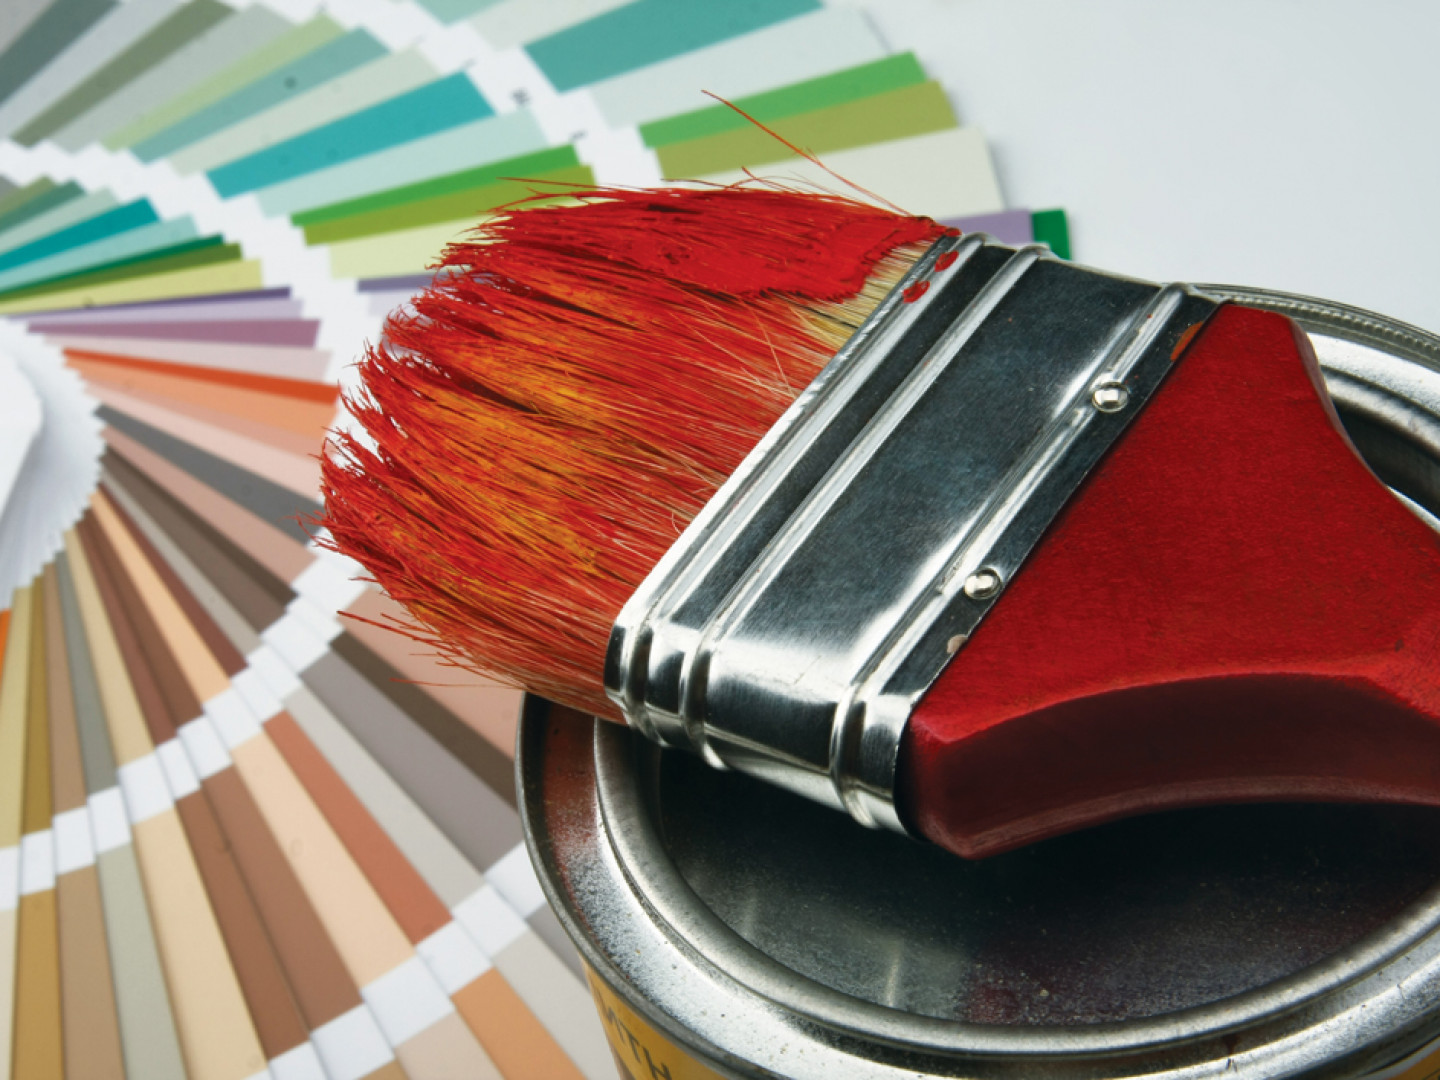 Match your new paint to your interior design